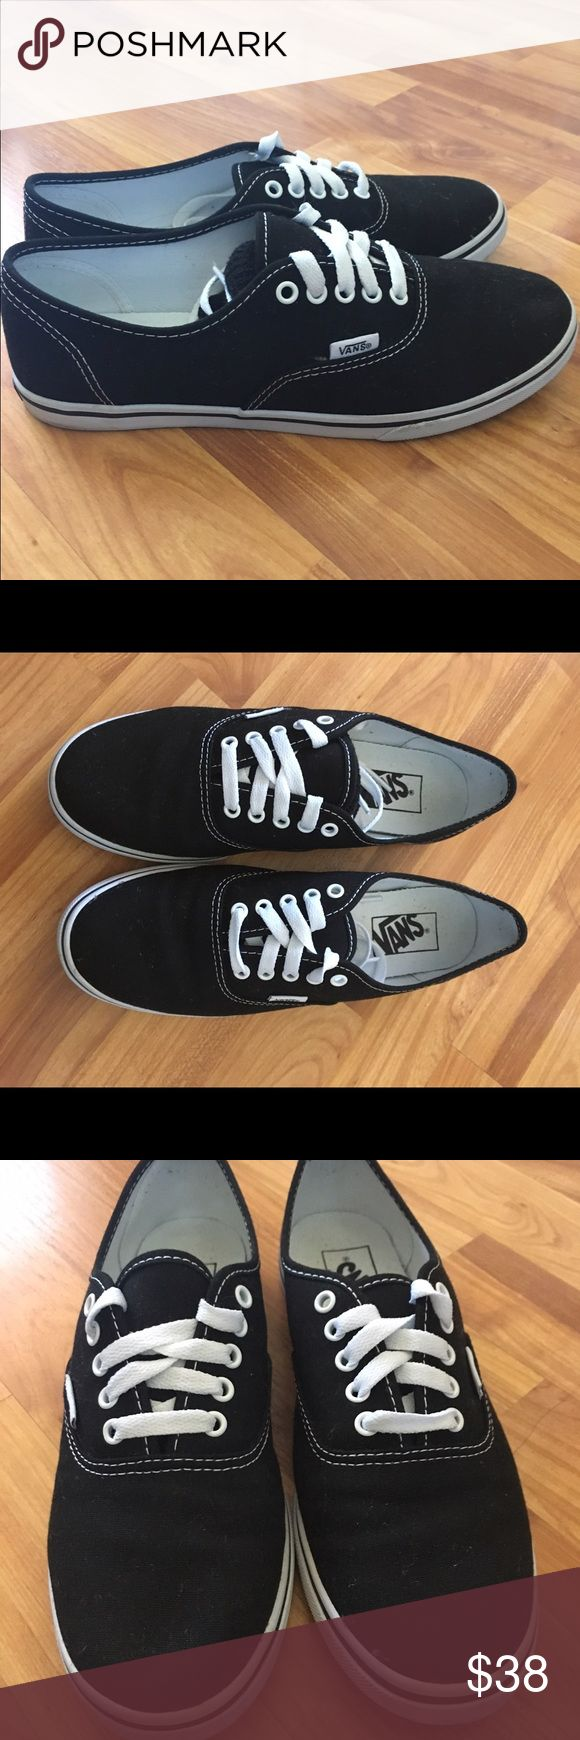 Black vans Women's size 8. Like new, only worn once Vans Shoes Sneakers